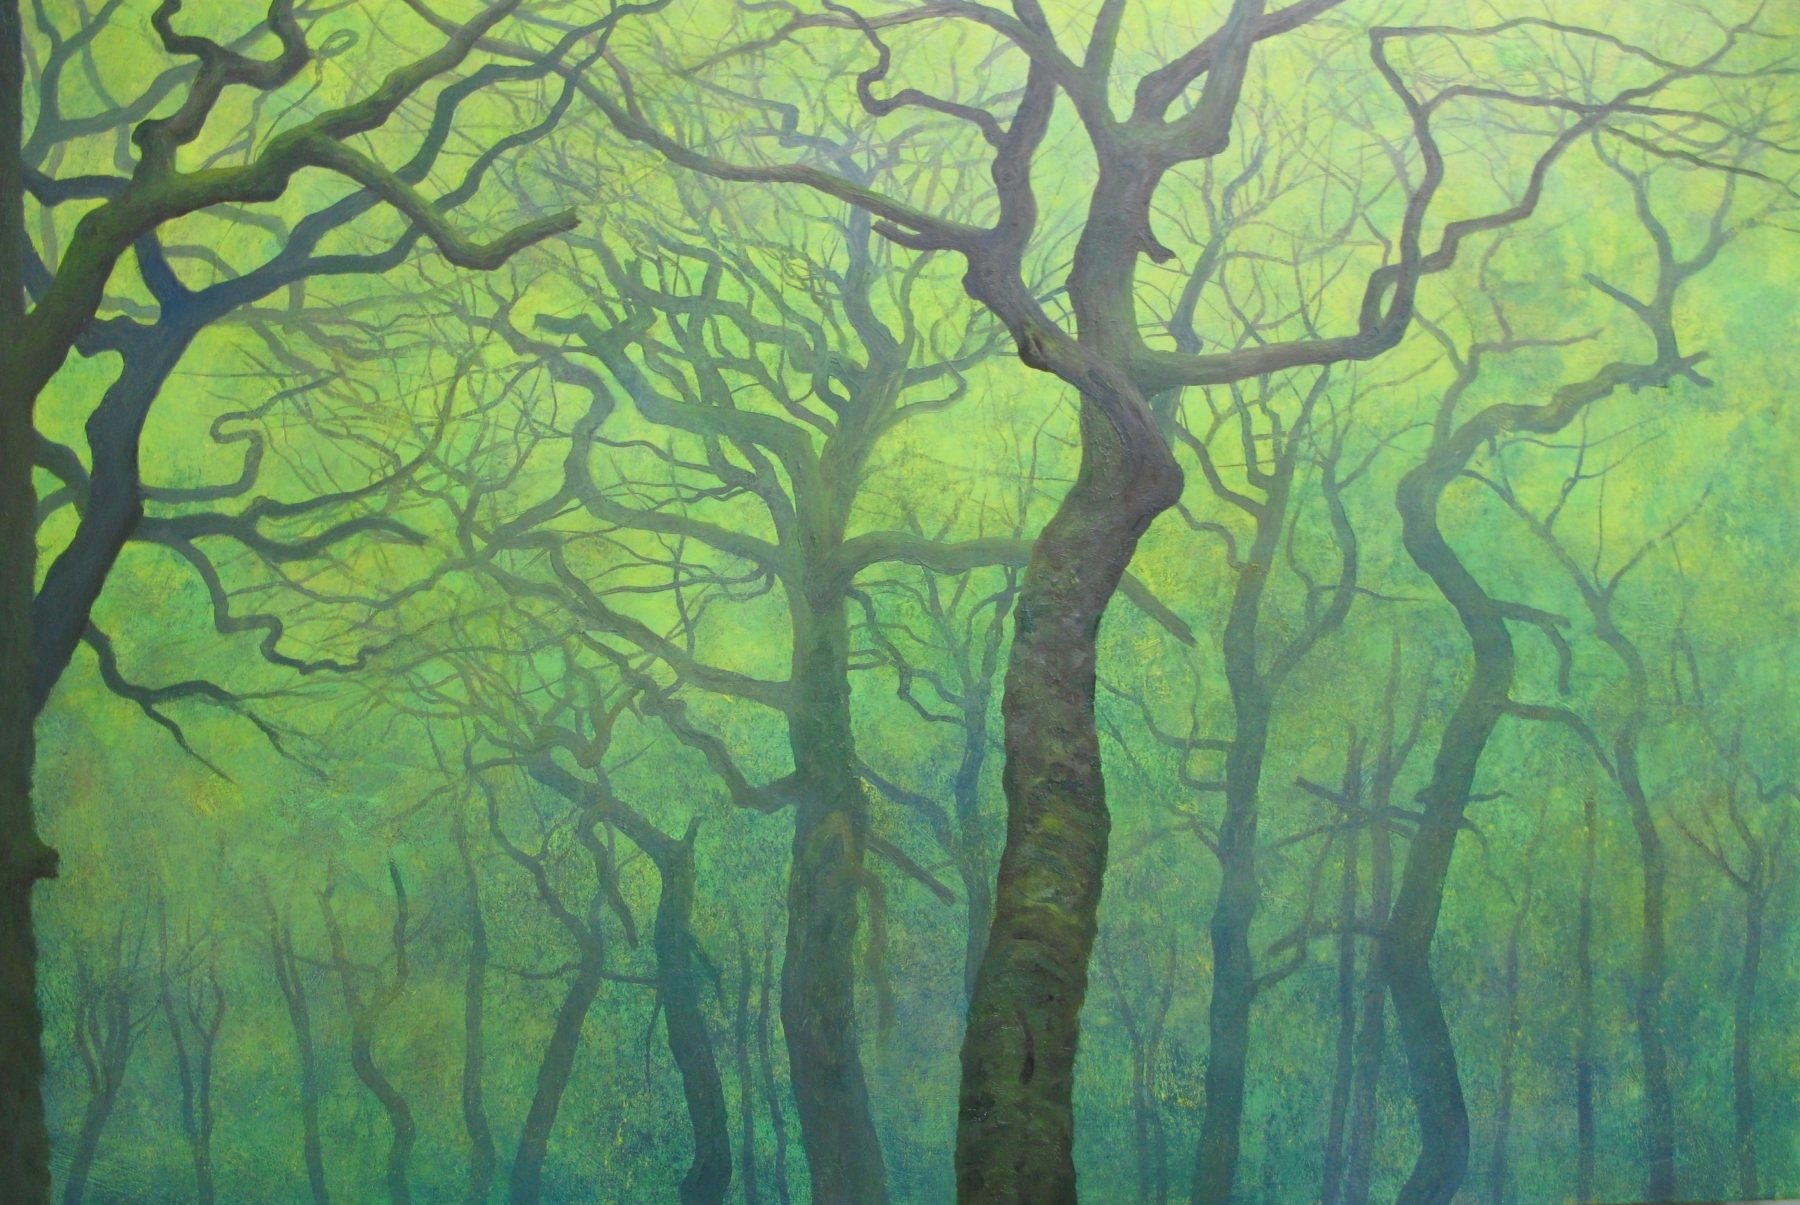 Atmospheric painting of tall thin tree trunks against a misty looking green sky